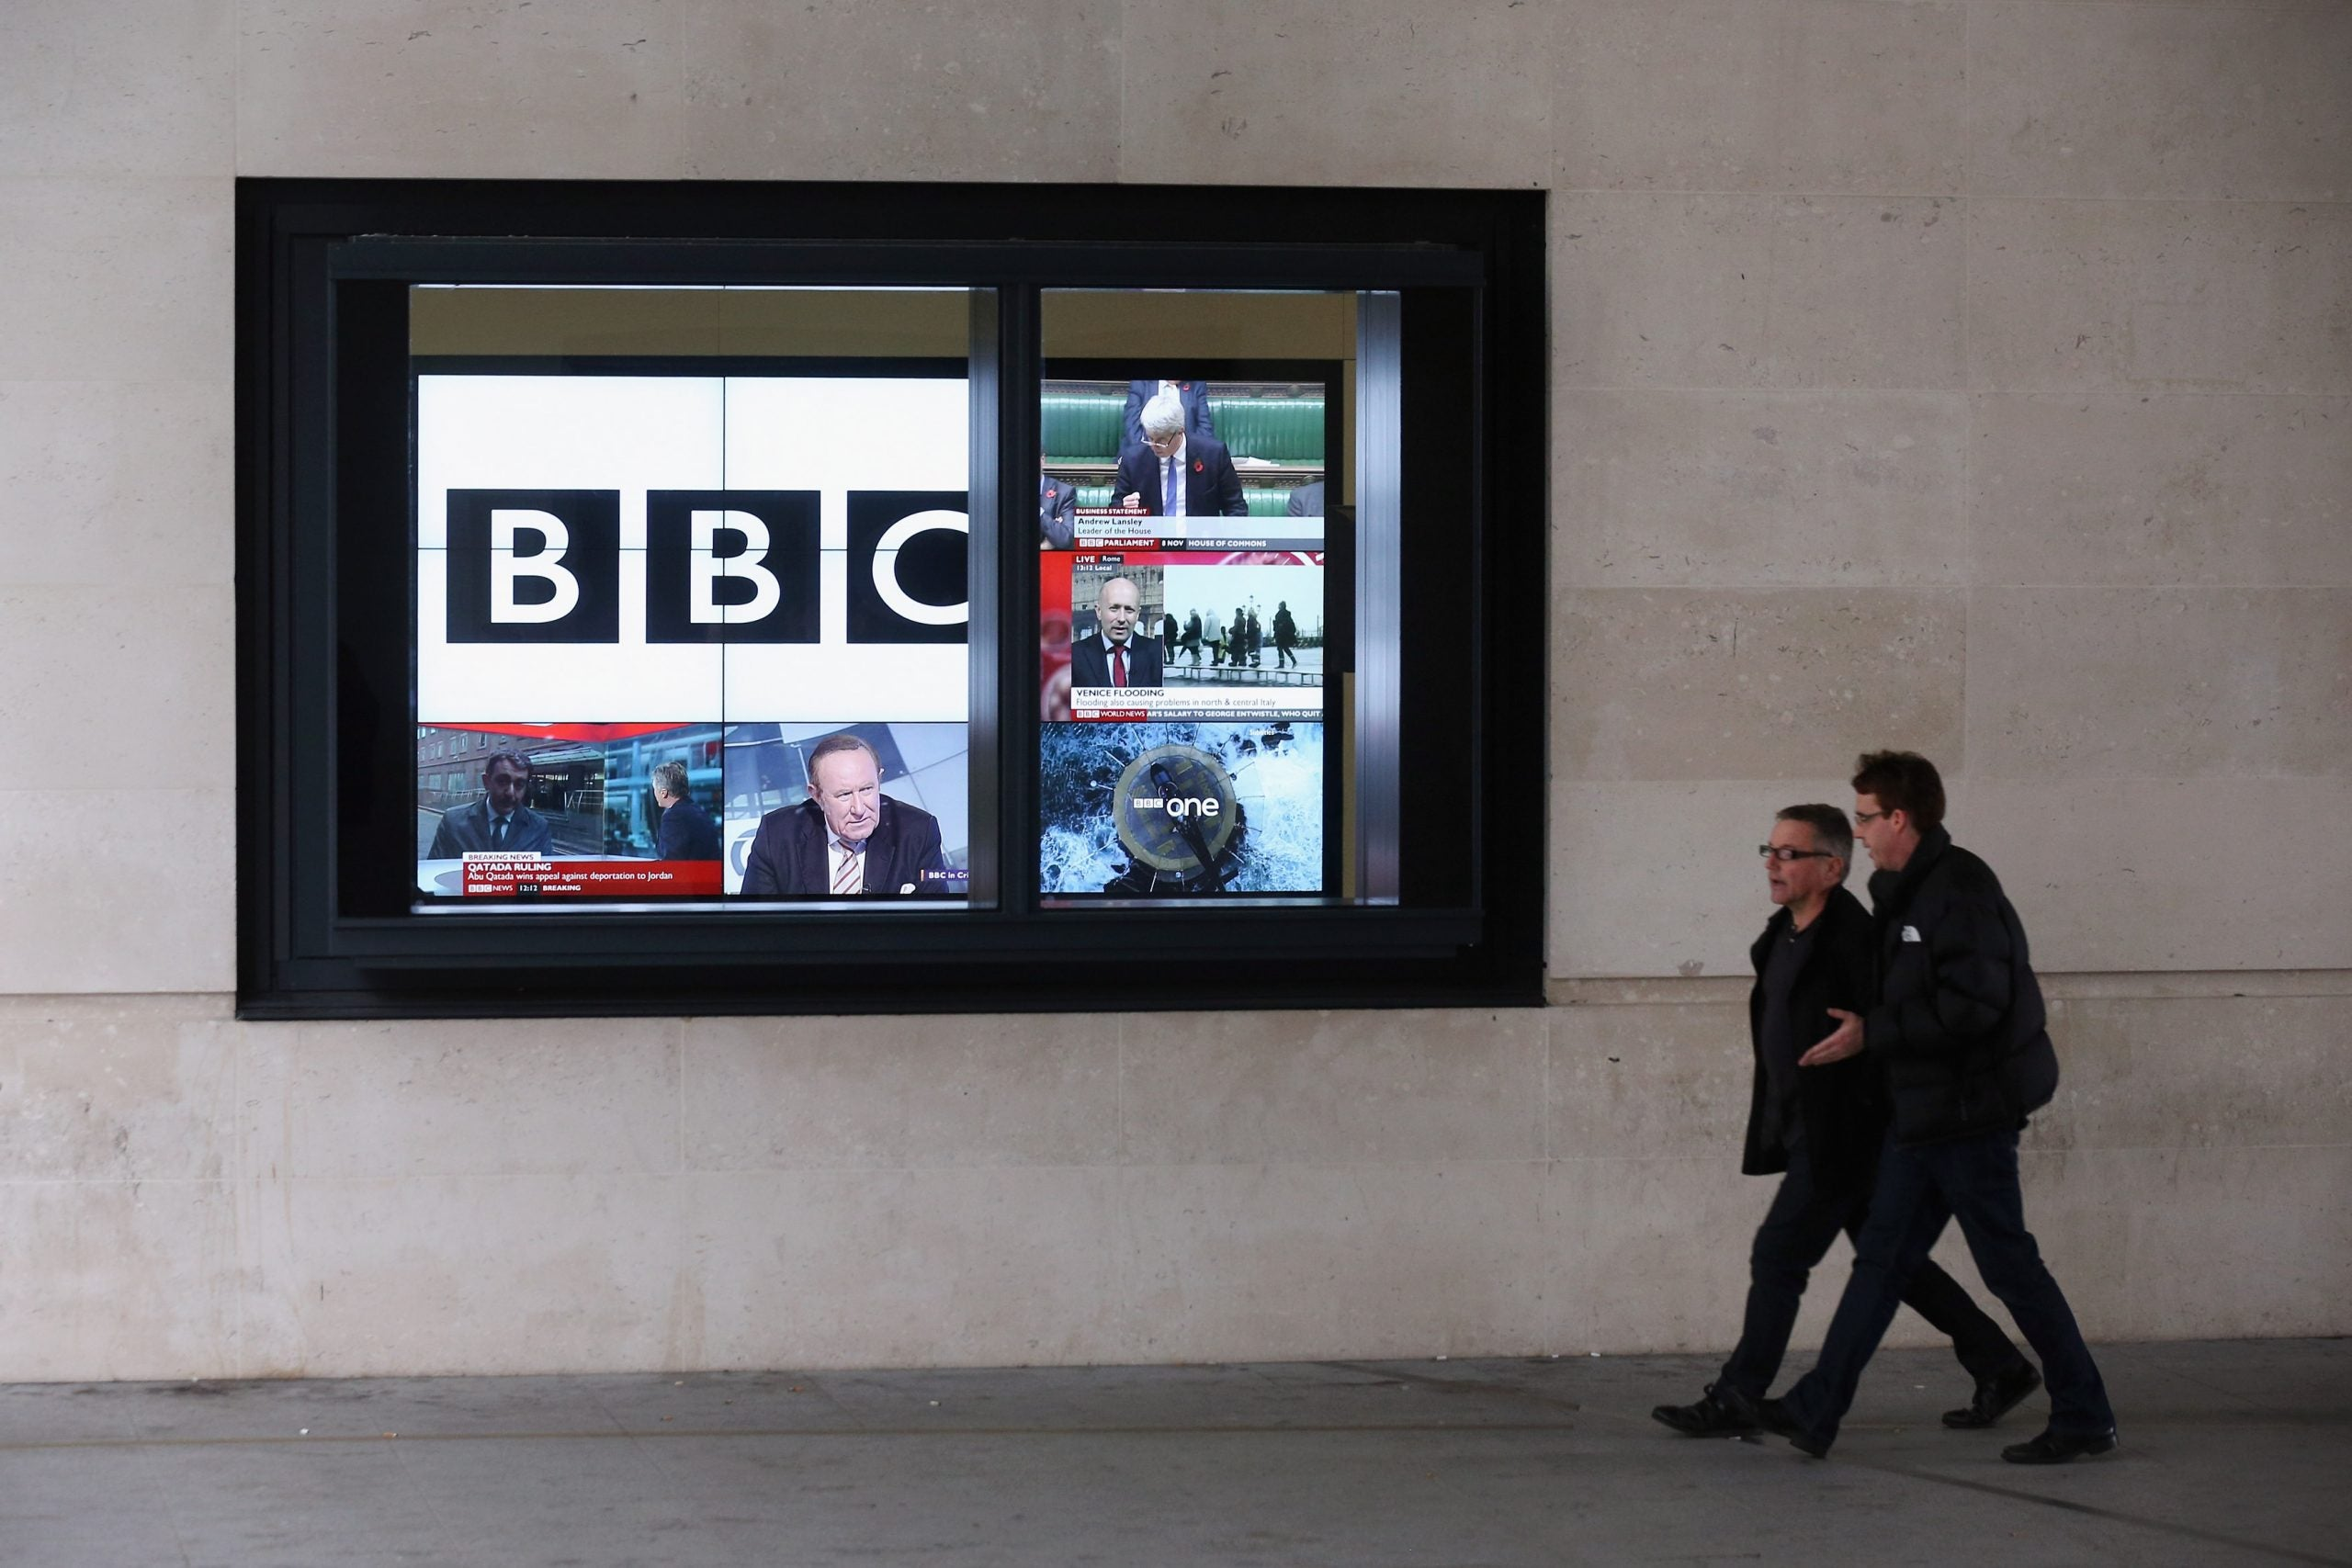 The BBC may not always know best, but let's not forget it still plays a vital role